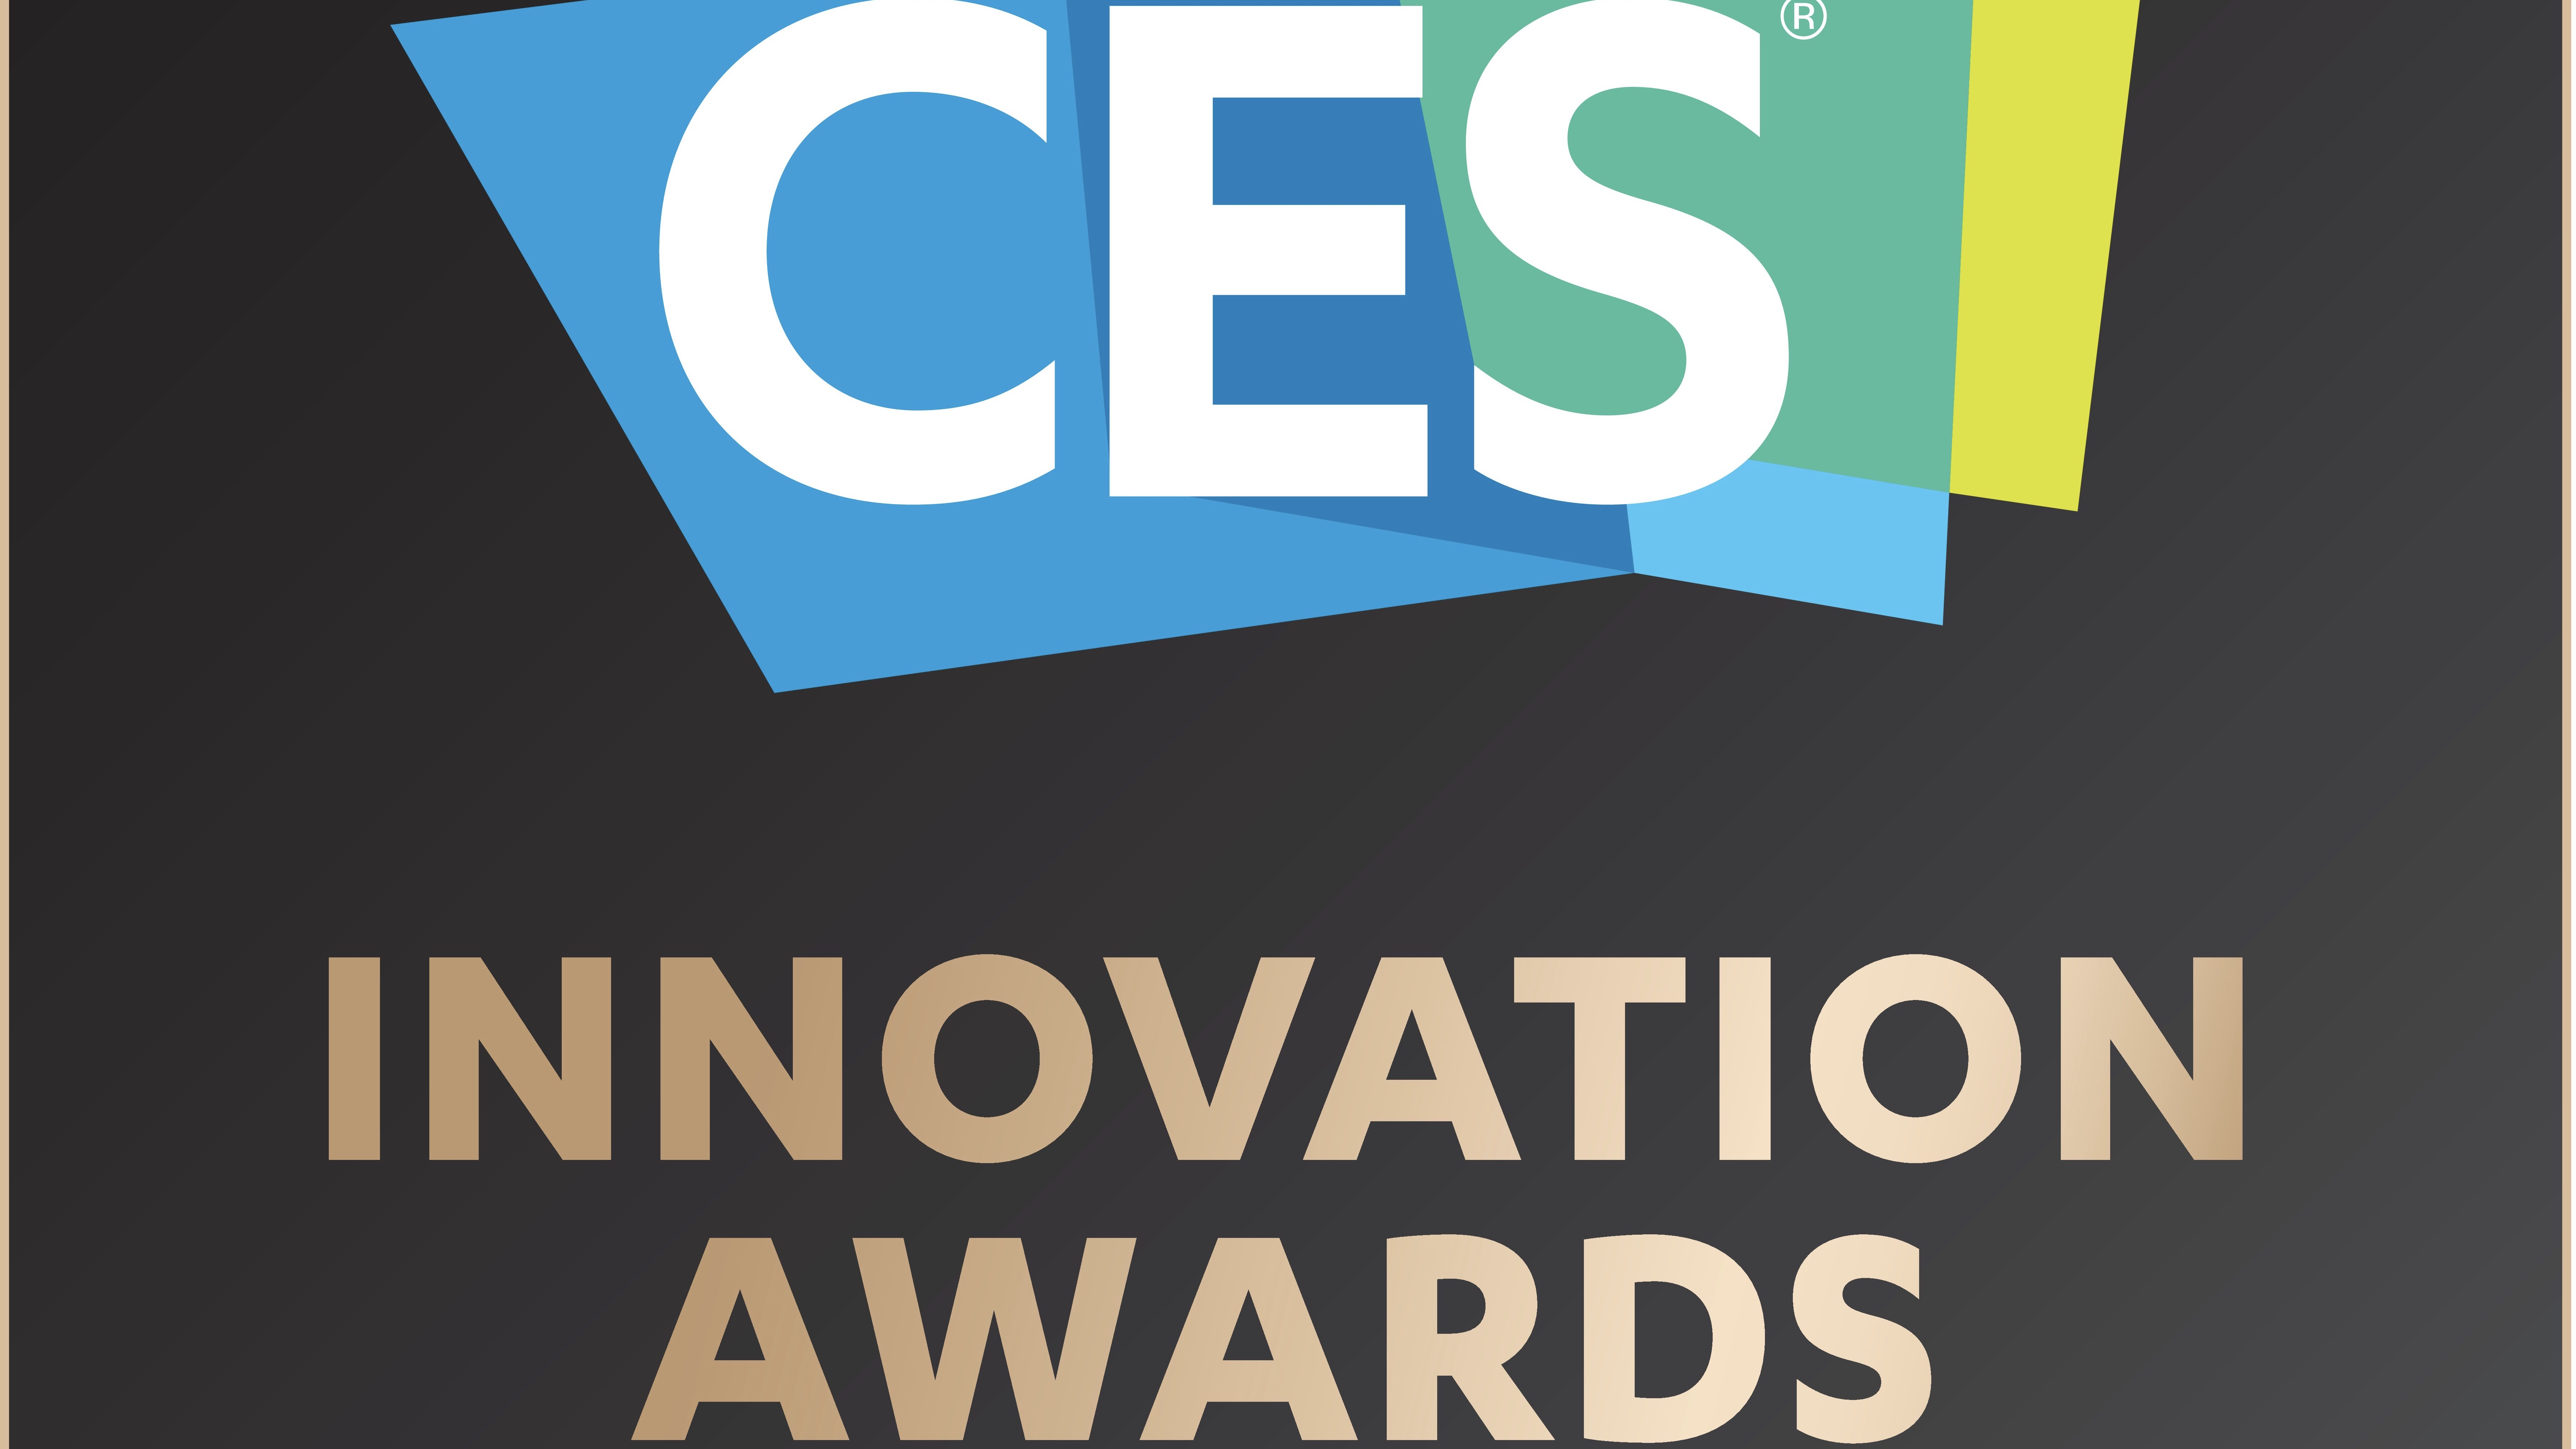 LG received 'Best of Innovation' Award